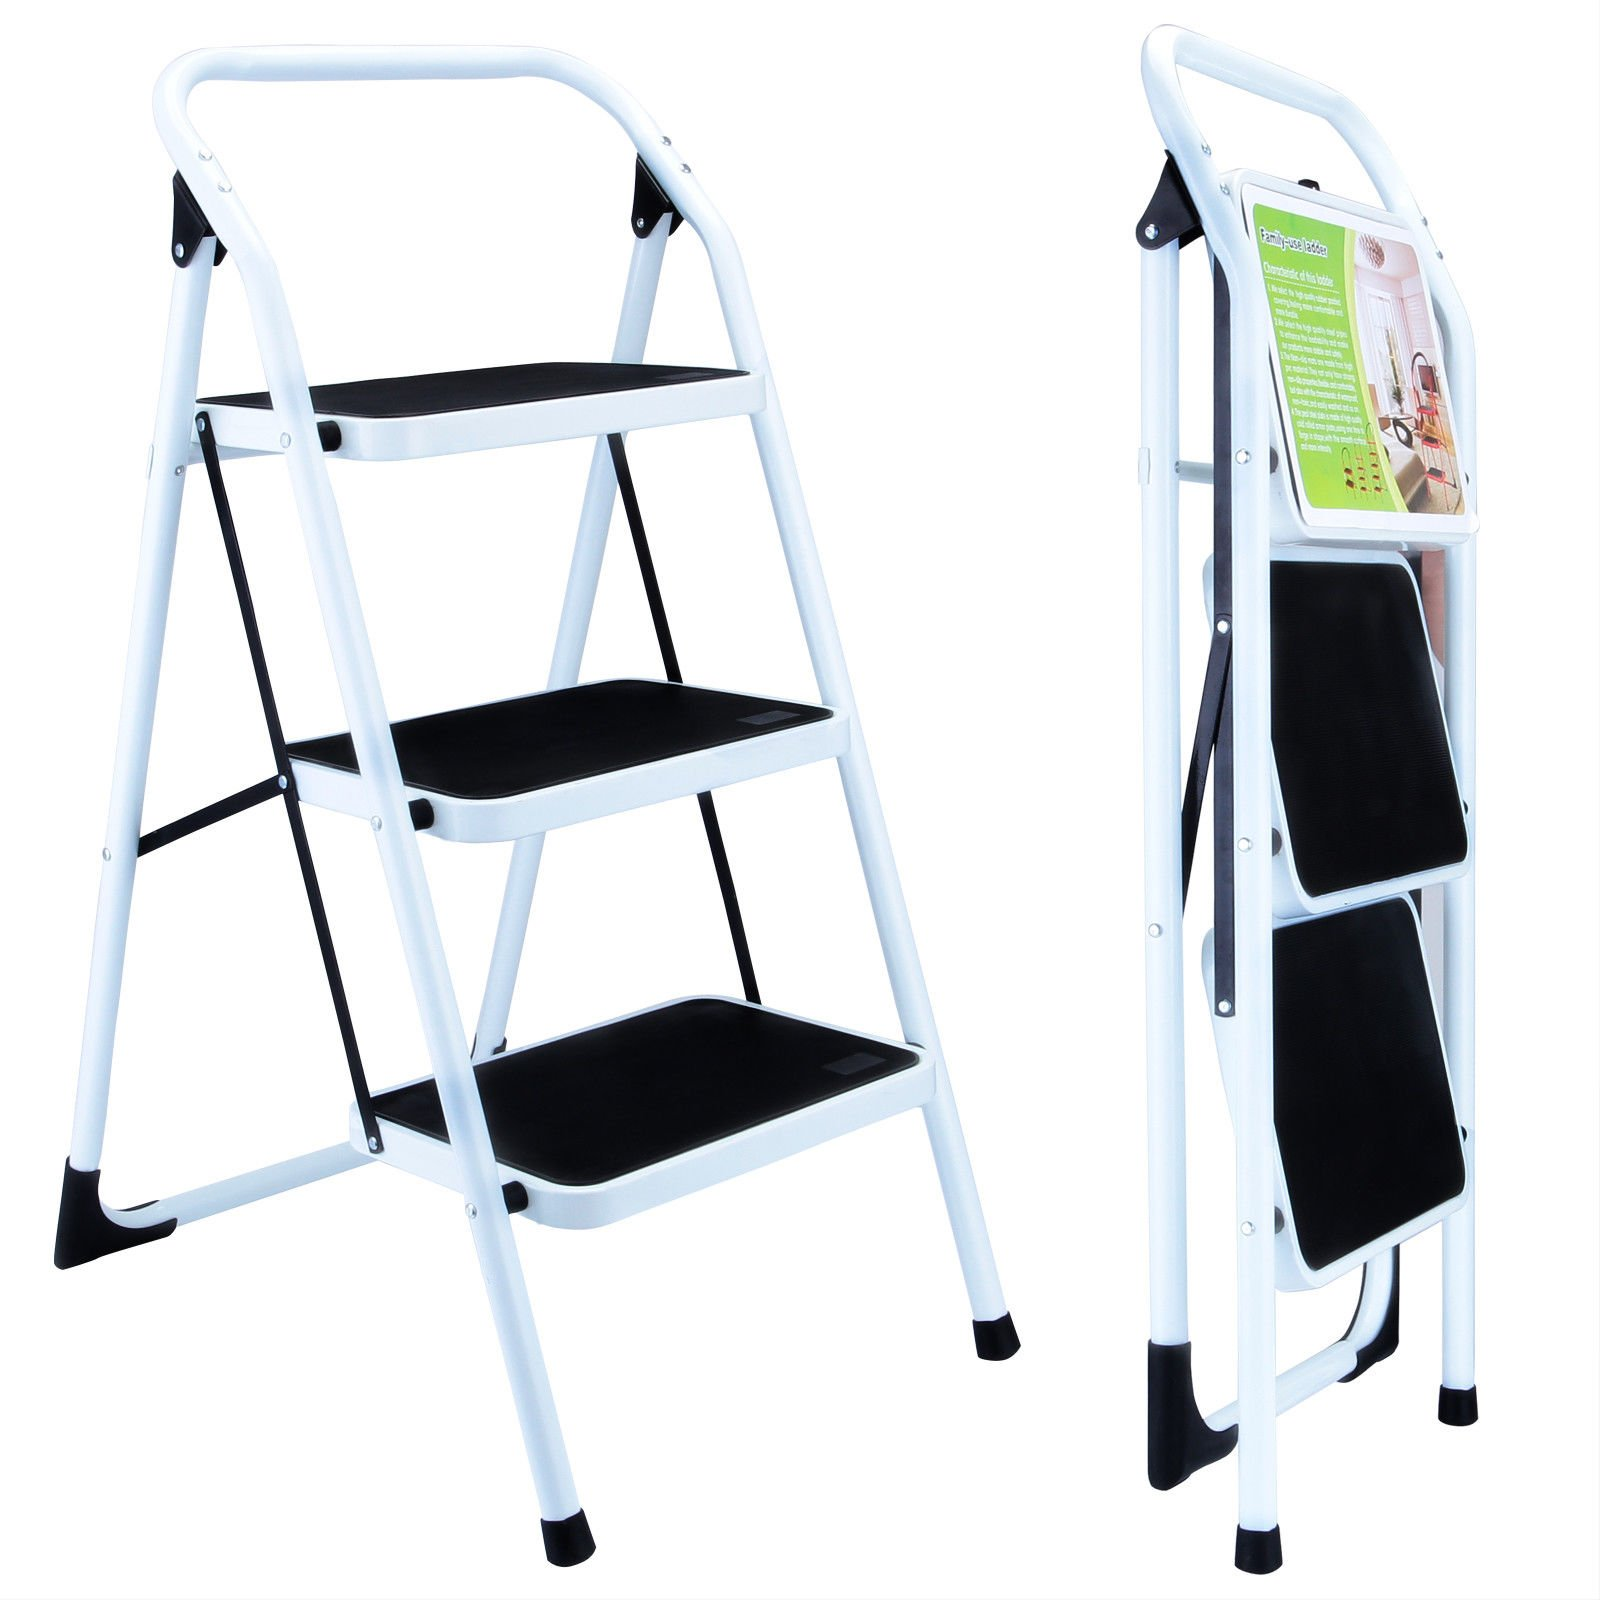 Senrob 3 Step Ladder with Hand Grip&Platform,Folding Lightweight Tool Suiting for Home-Max Weight 330lbs